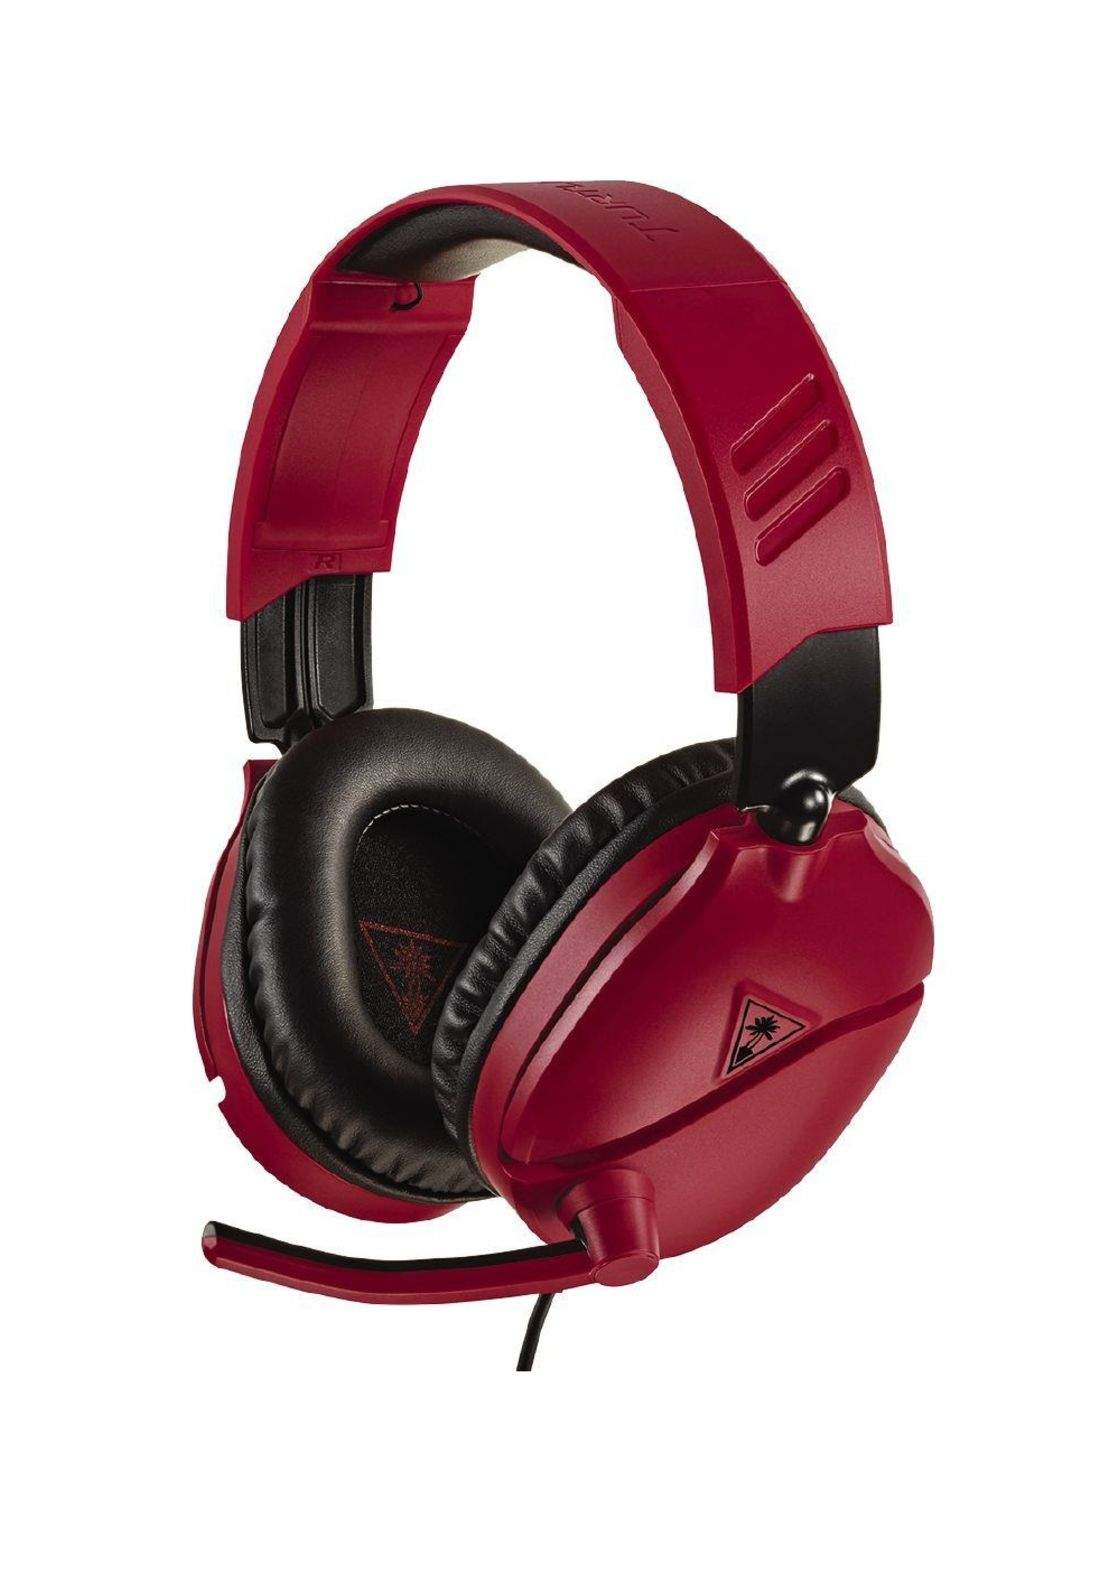 Turtle Beach Recon 70 gaming headset - Red  سماعة